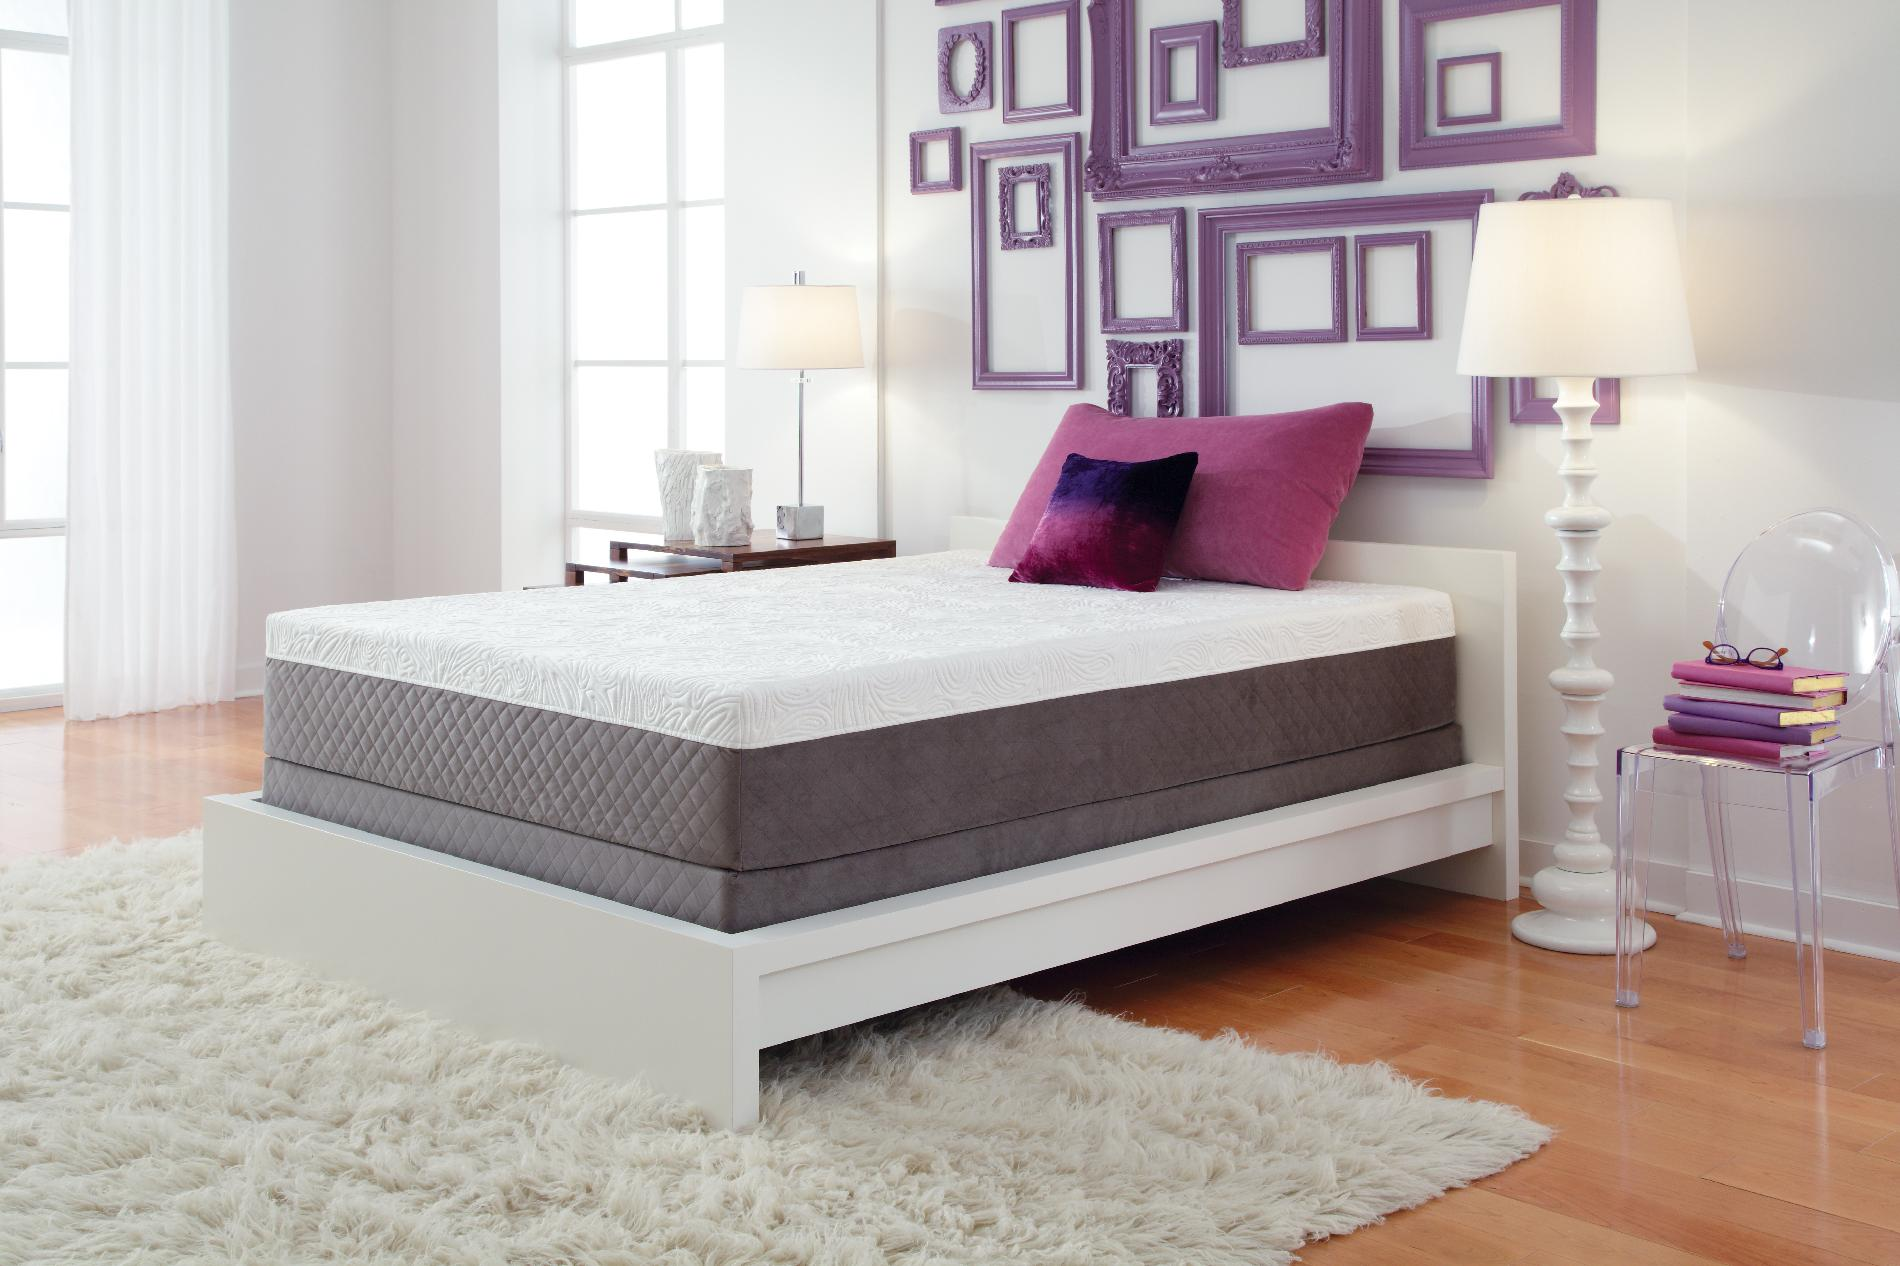 Sealy Posturepedic Optimum Vibrant, Firm, Queen Mattress Only